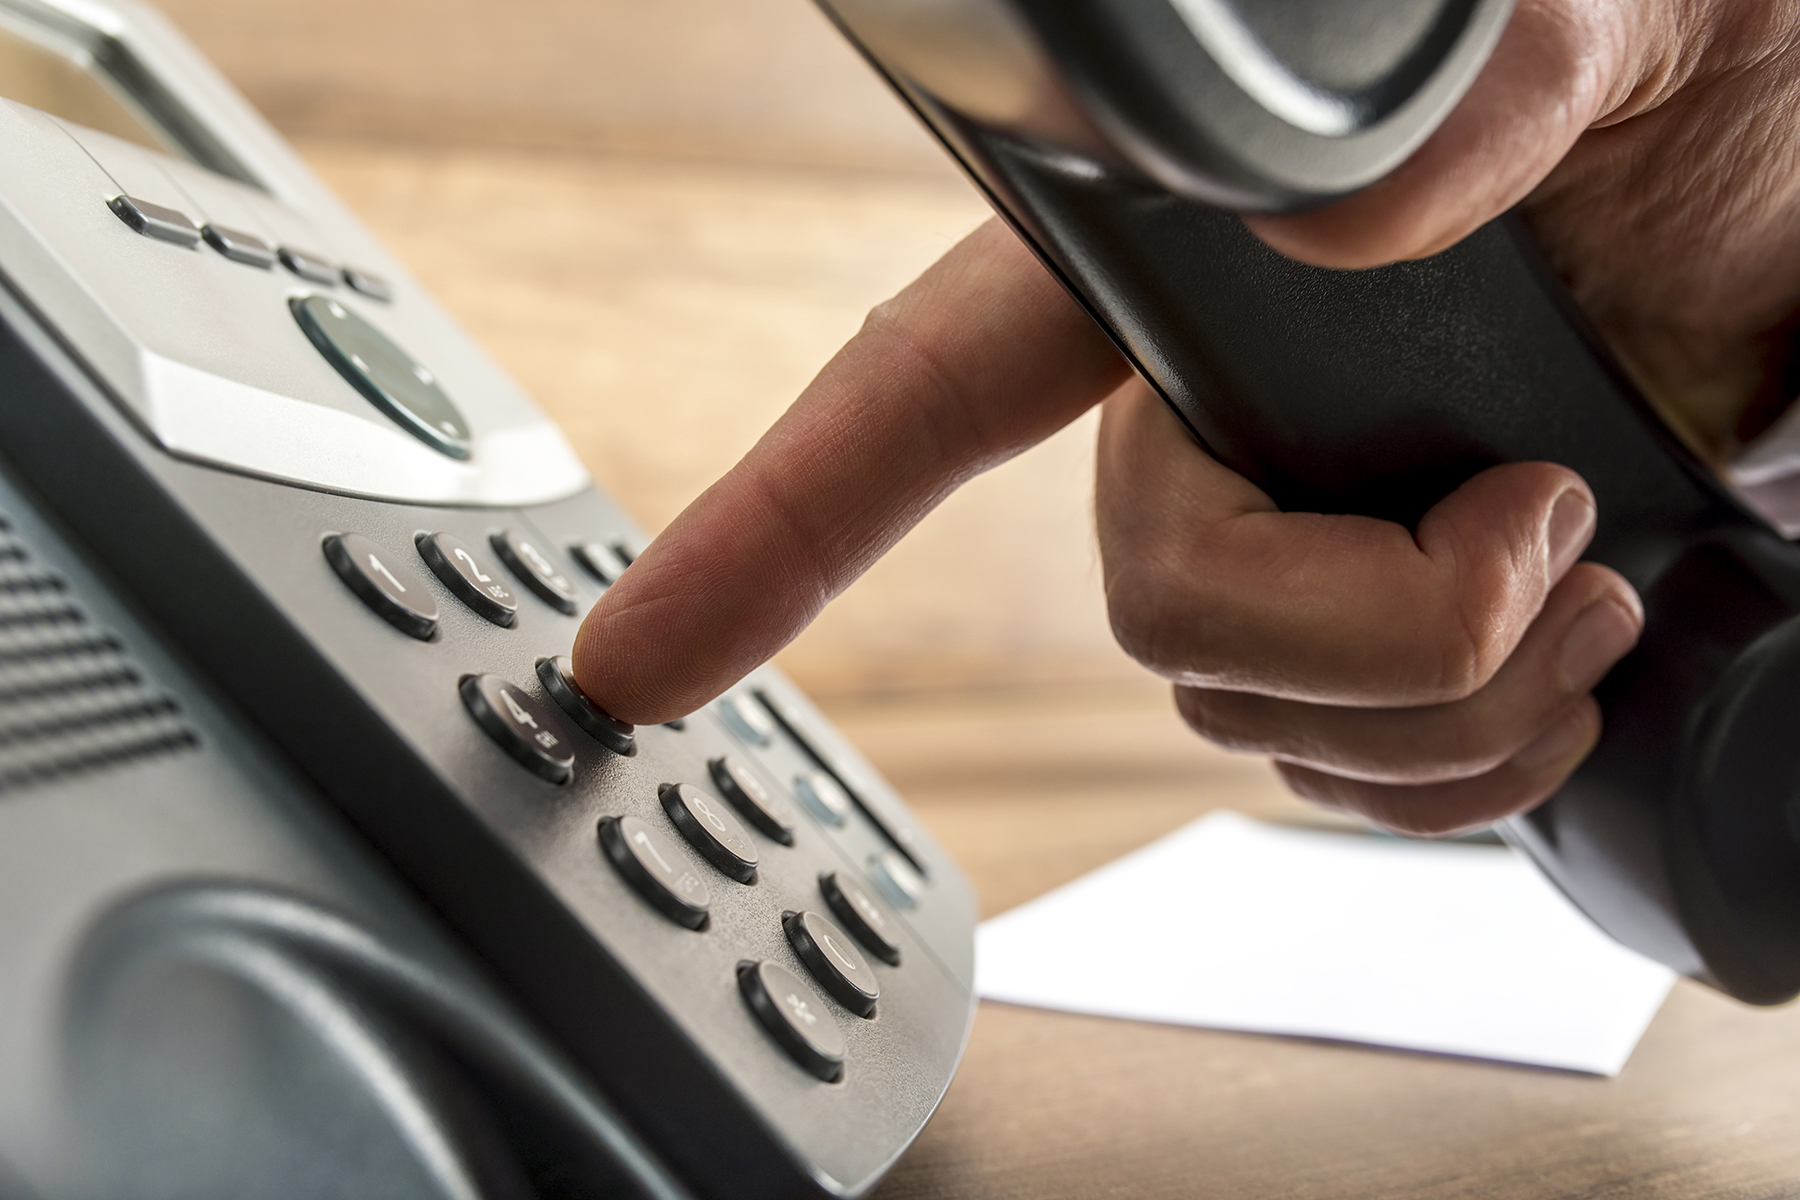 Dialling a phone number